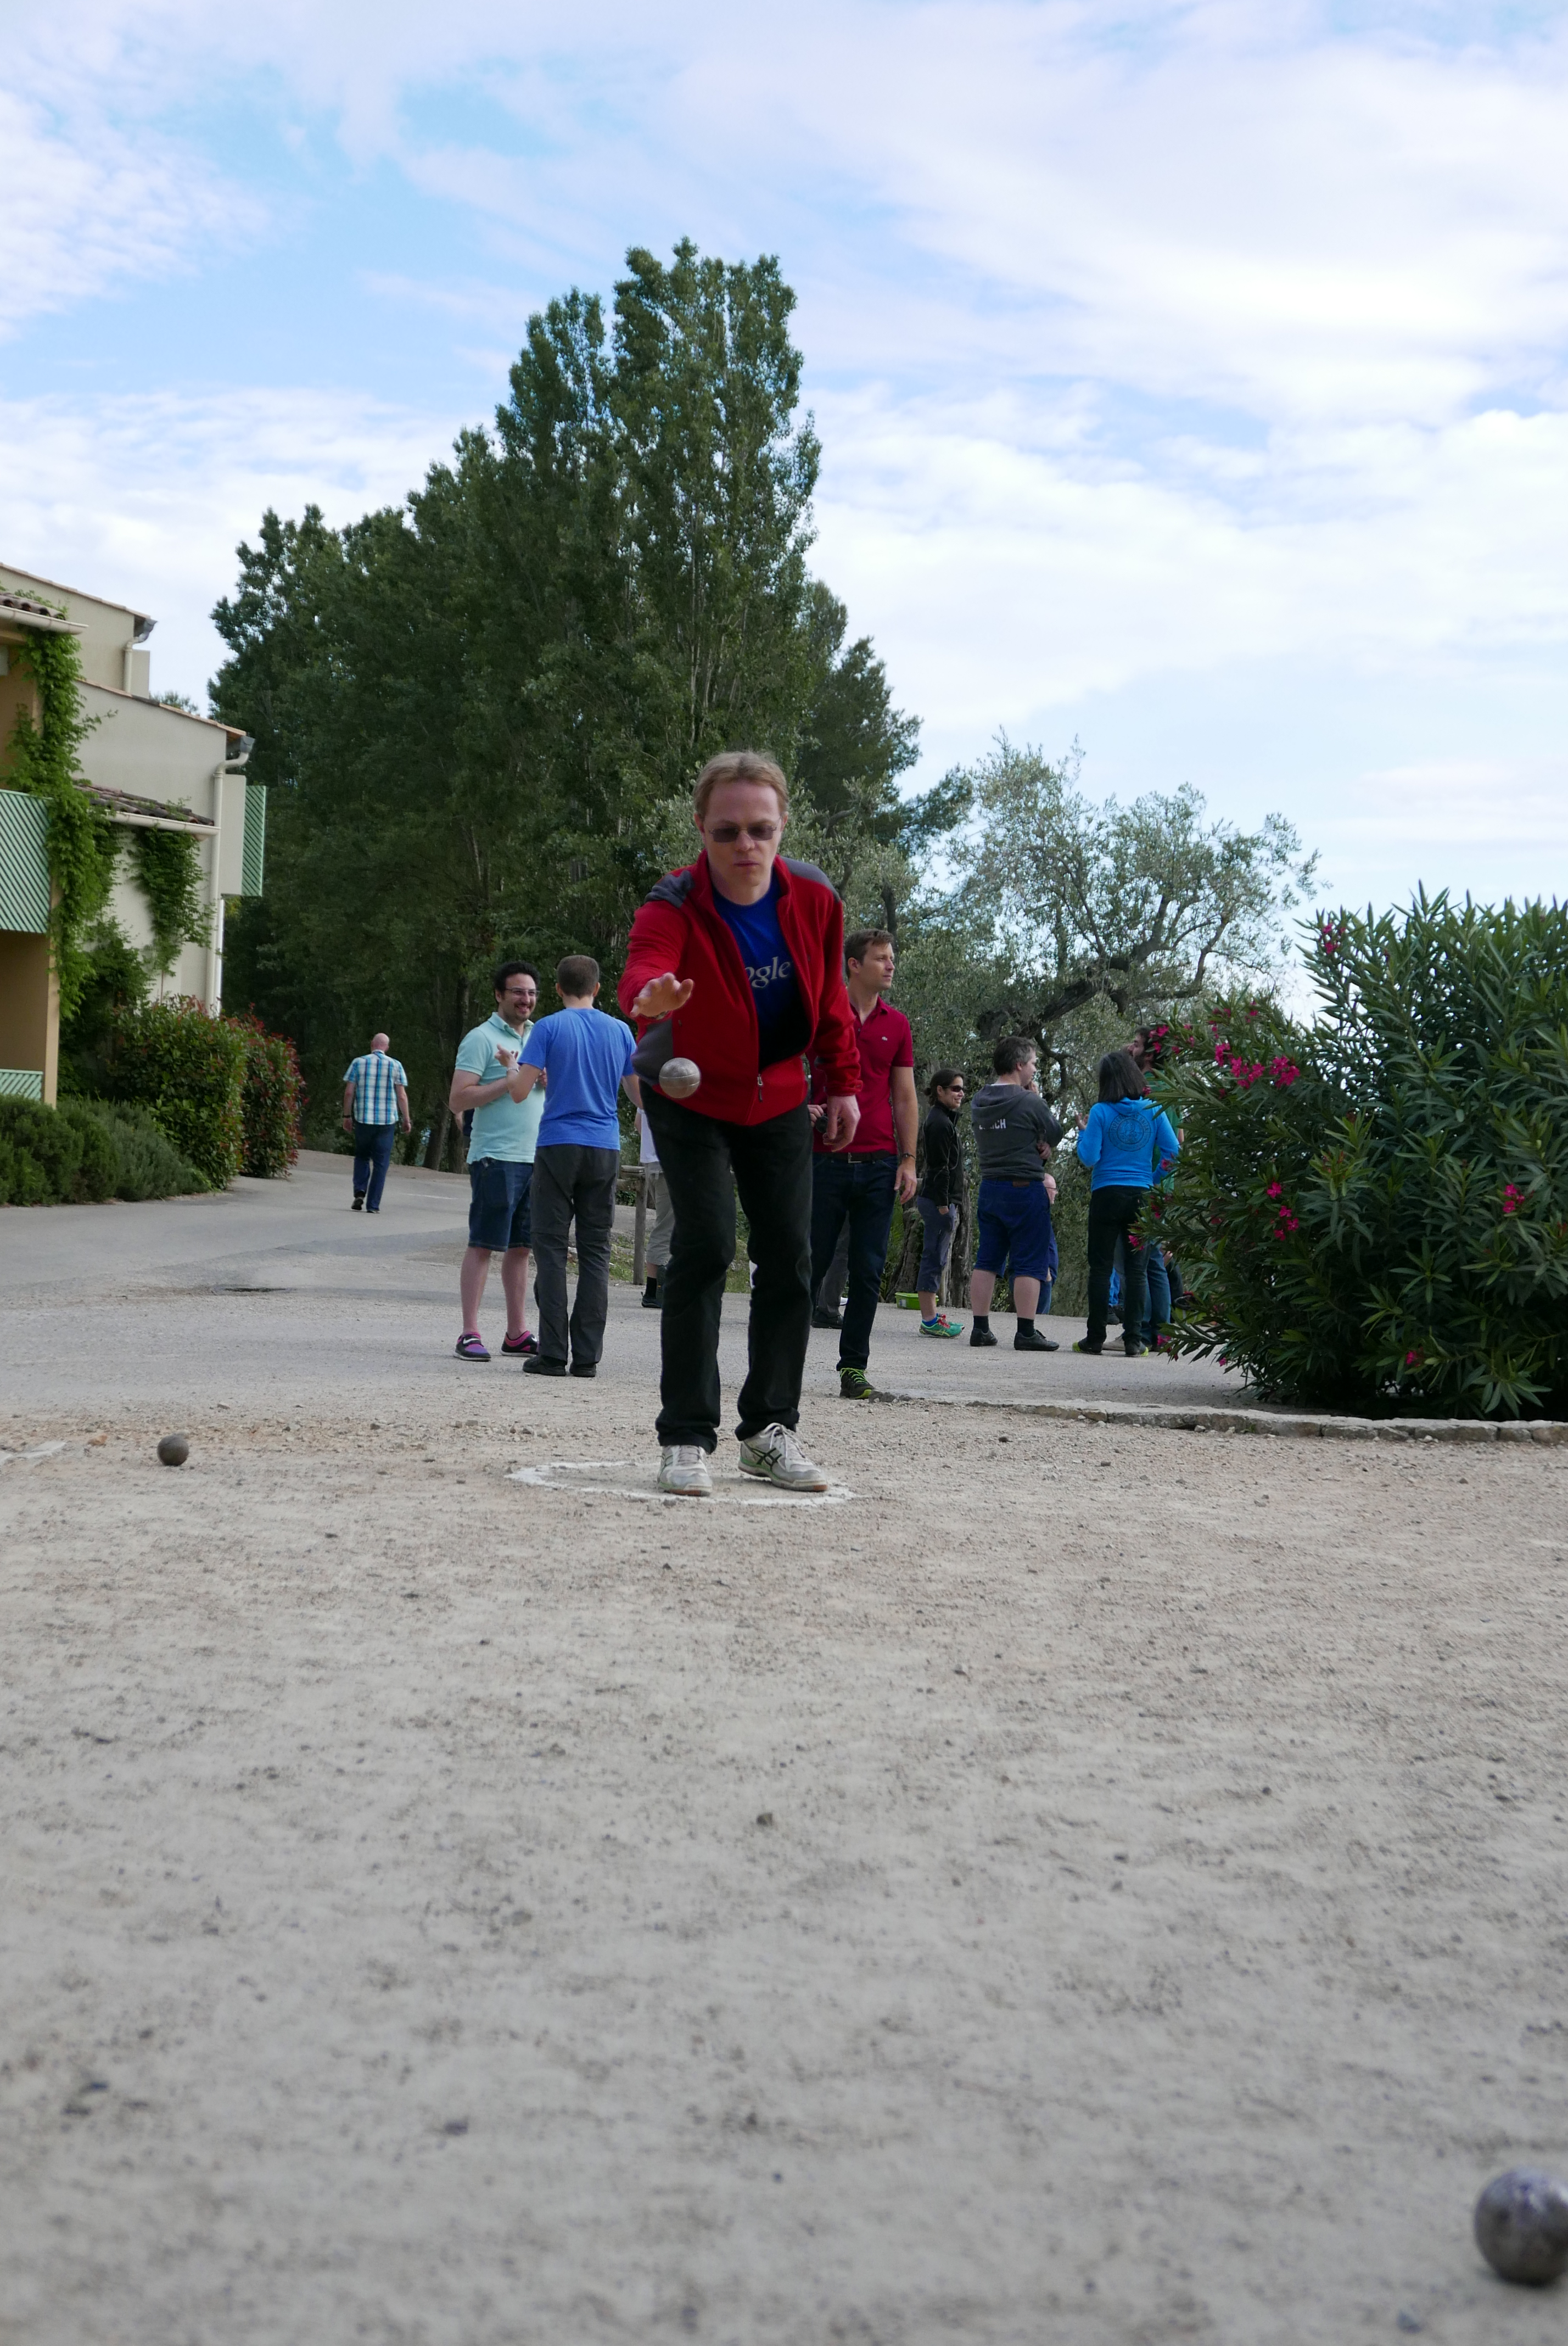 Guillaume force controlling a Petanque ball